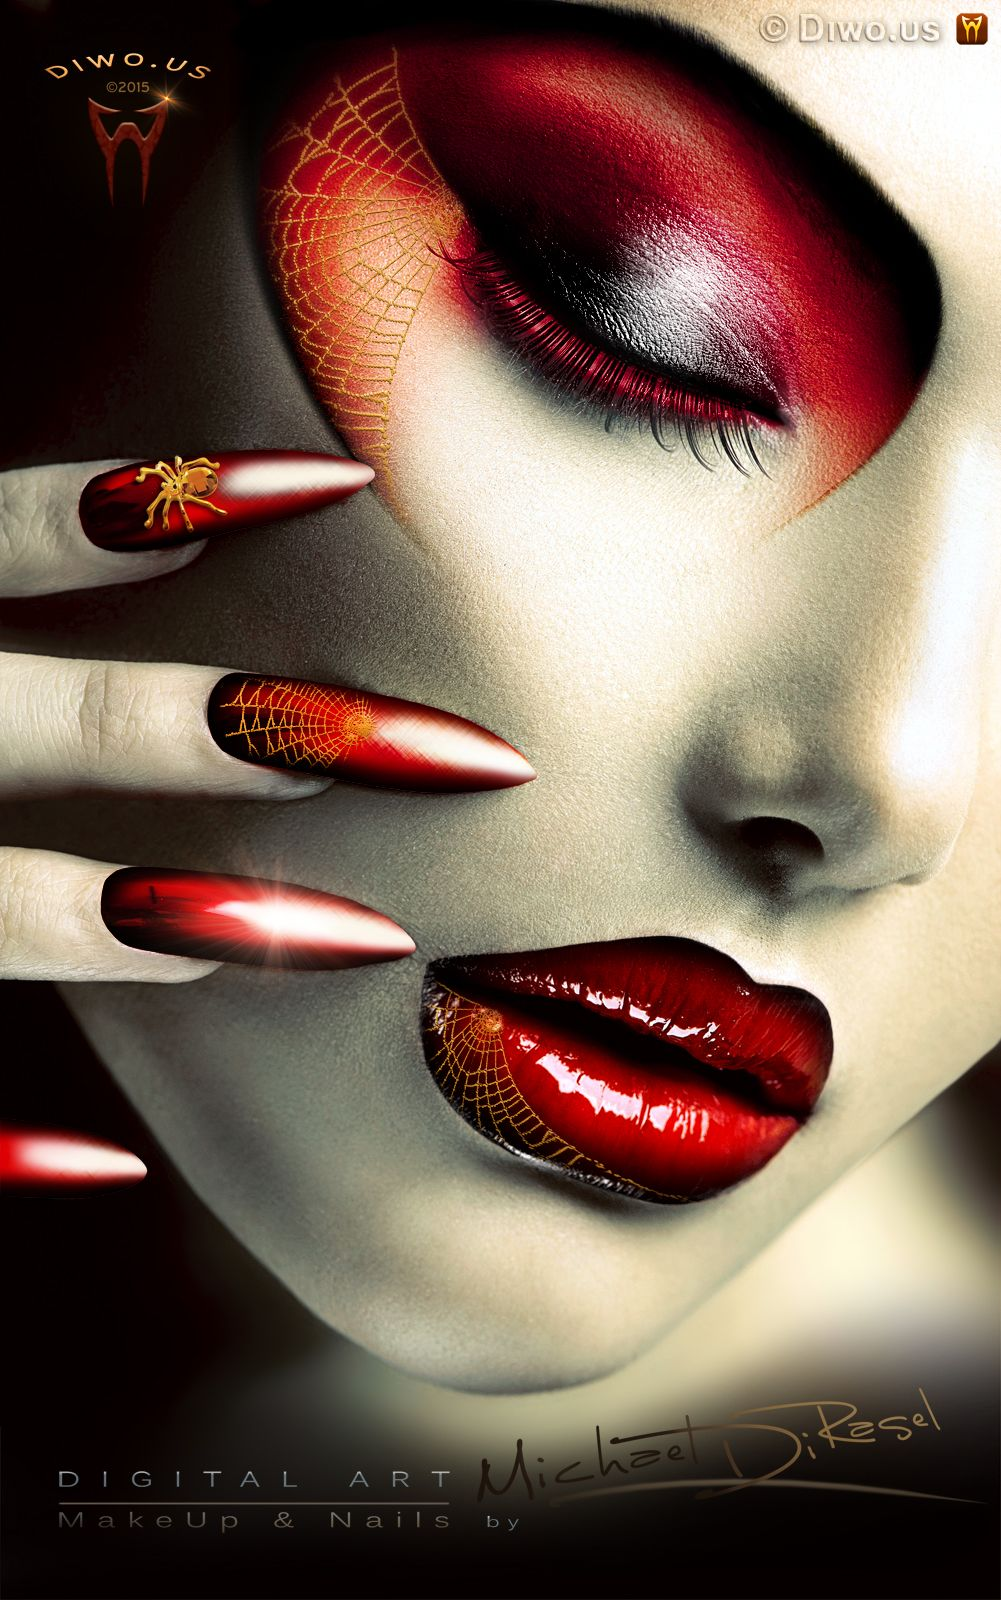 Diwous - Digital Art - Spider Girl, Elegant Halloween MakeUp and Nails, beauty, digitální grafika, nehty, diwoart, diwousart, fantasy, glamour, gold spider, horror, jewellery, kresba, malba, photomanipulation, počítačová grafika, portrait, net, Virtual